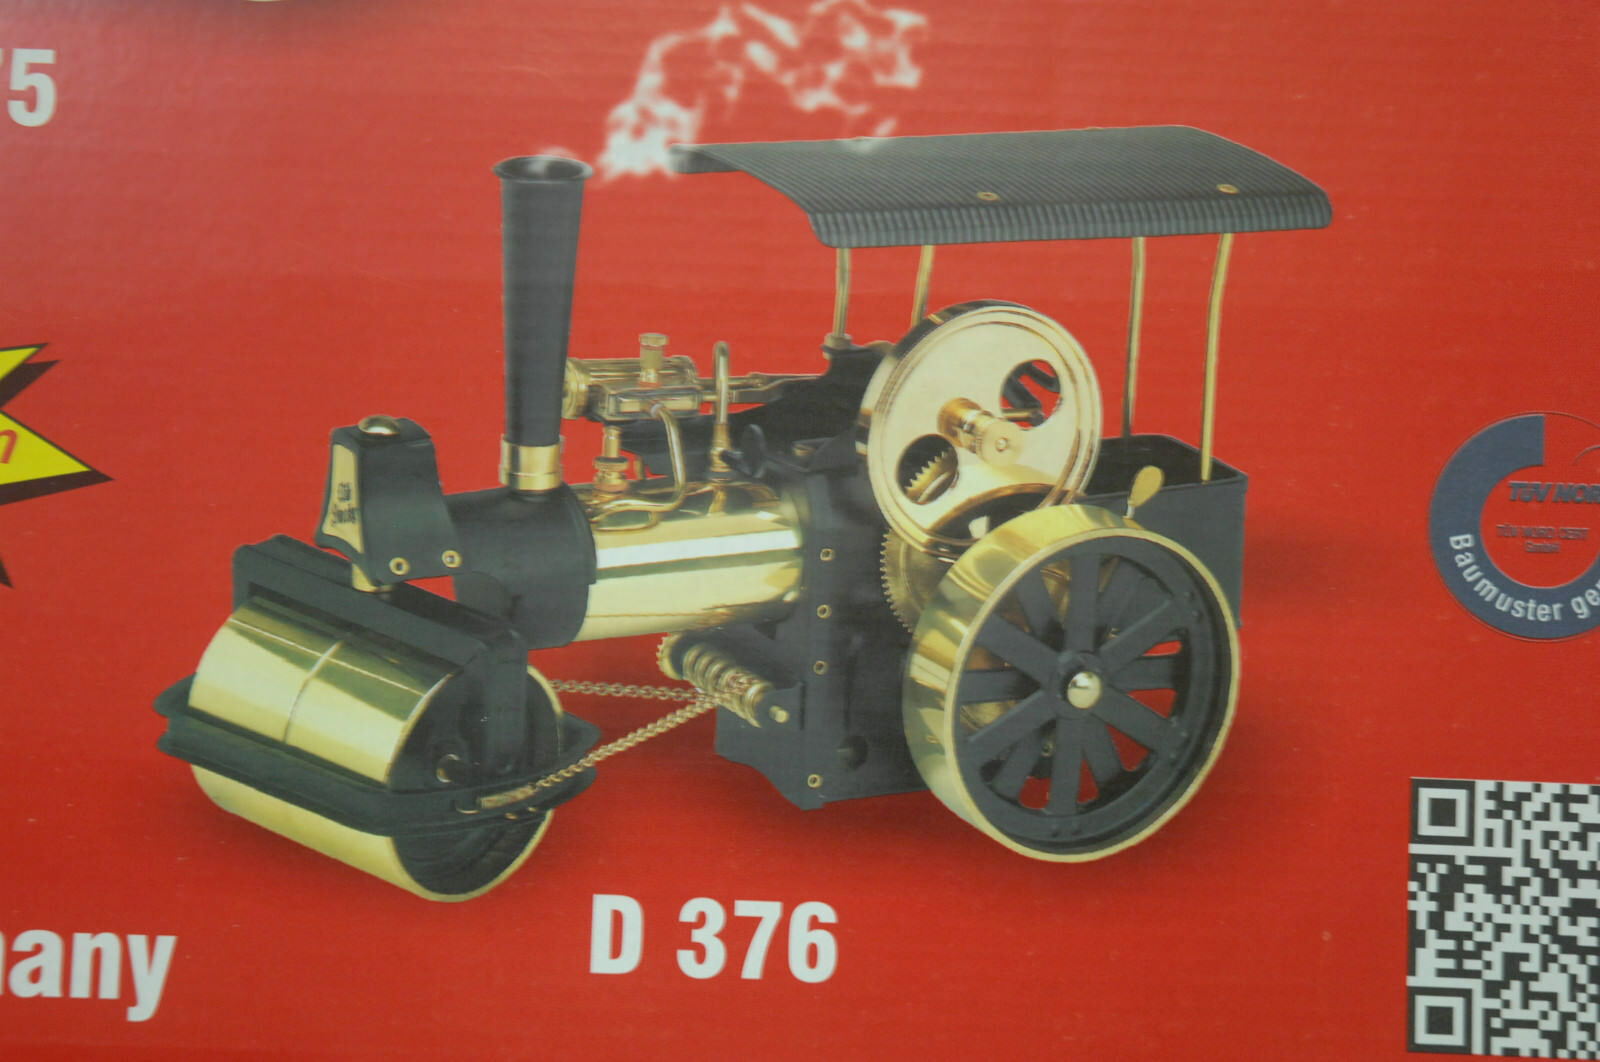 Toys, Hobbies Green Wilesco 0375 Kit Dampfwalze Steam Powered